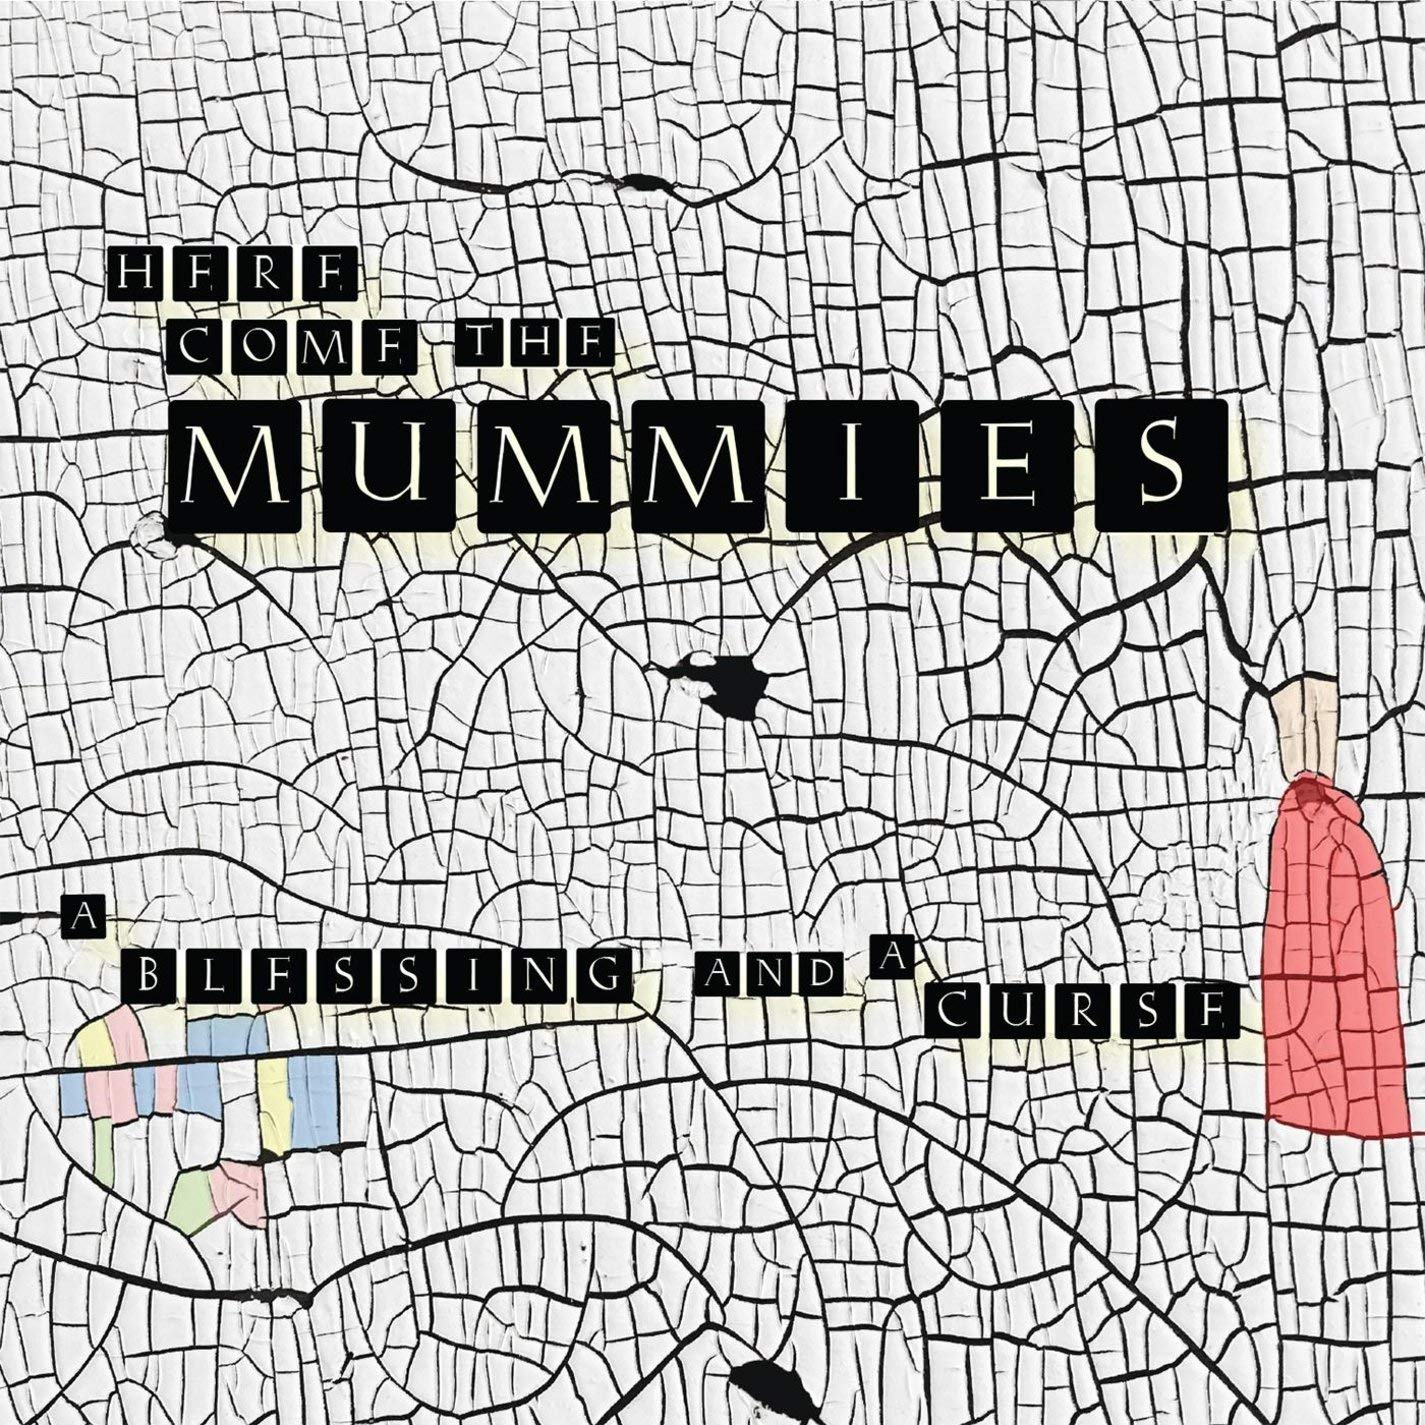 Here Come The Mummies - A Blessing And A Curse.jpg